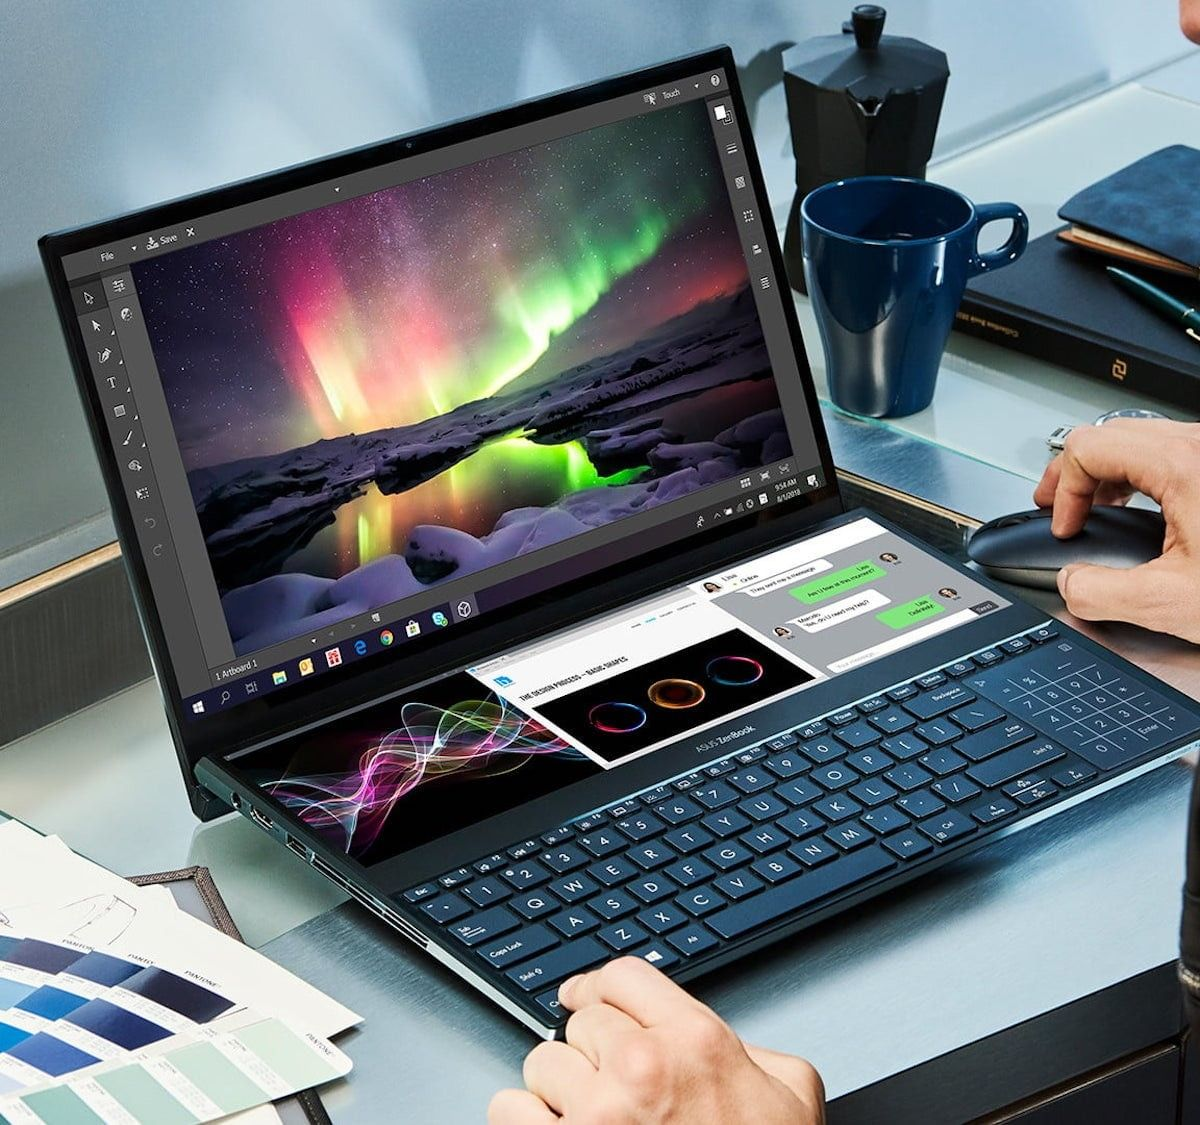 Asus Zenbook Duo 2 Display Laptop Features A Full Width Secondary Touchscreen Asus Asus Laptop Best Laptops